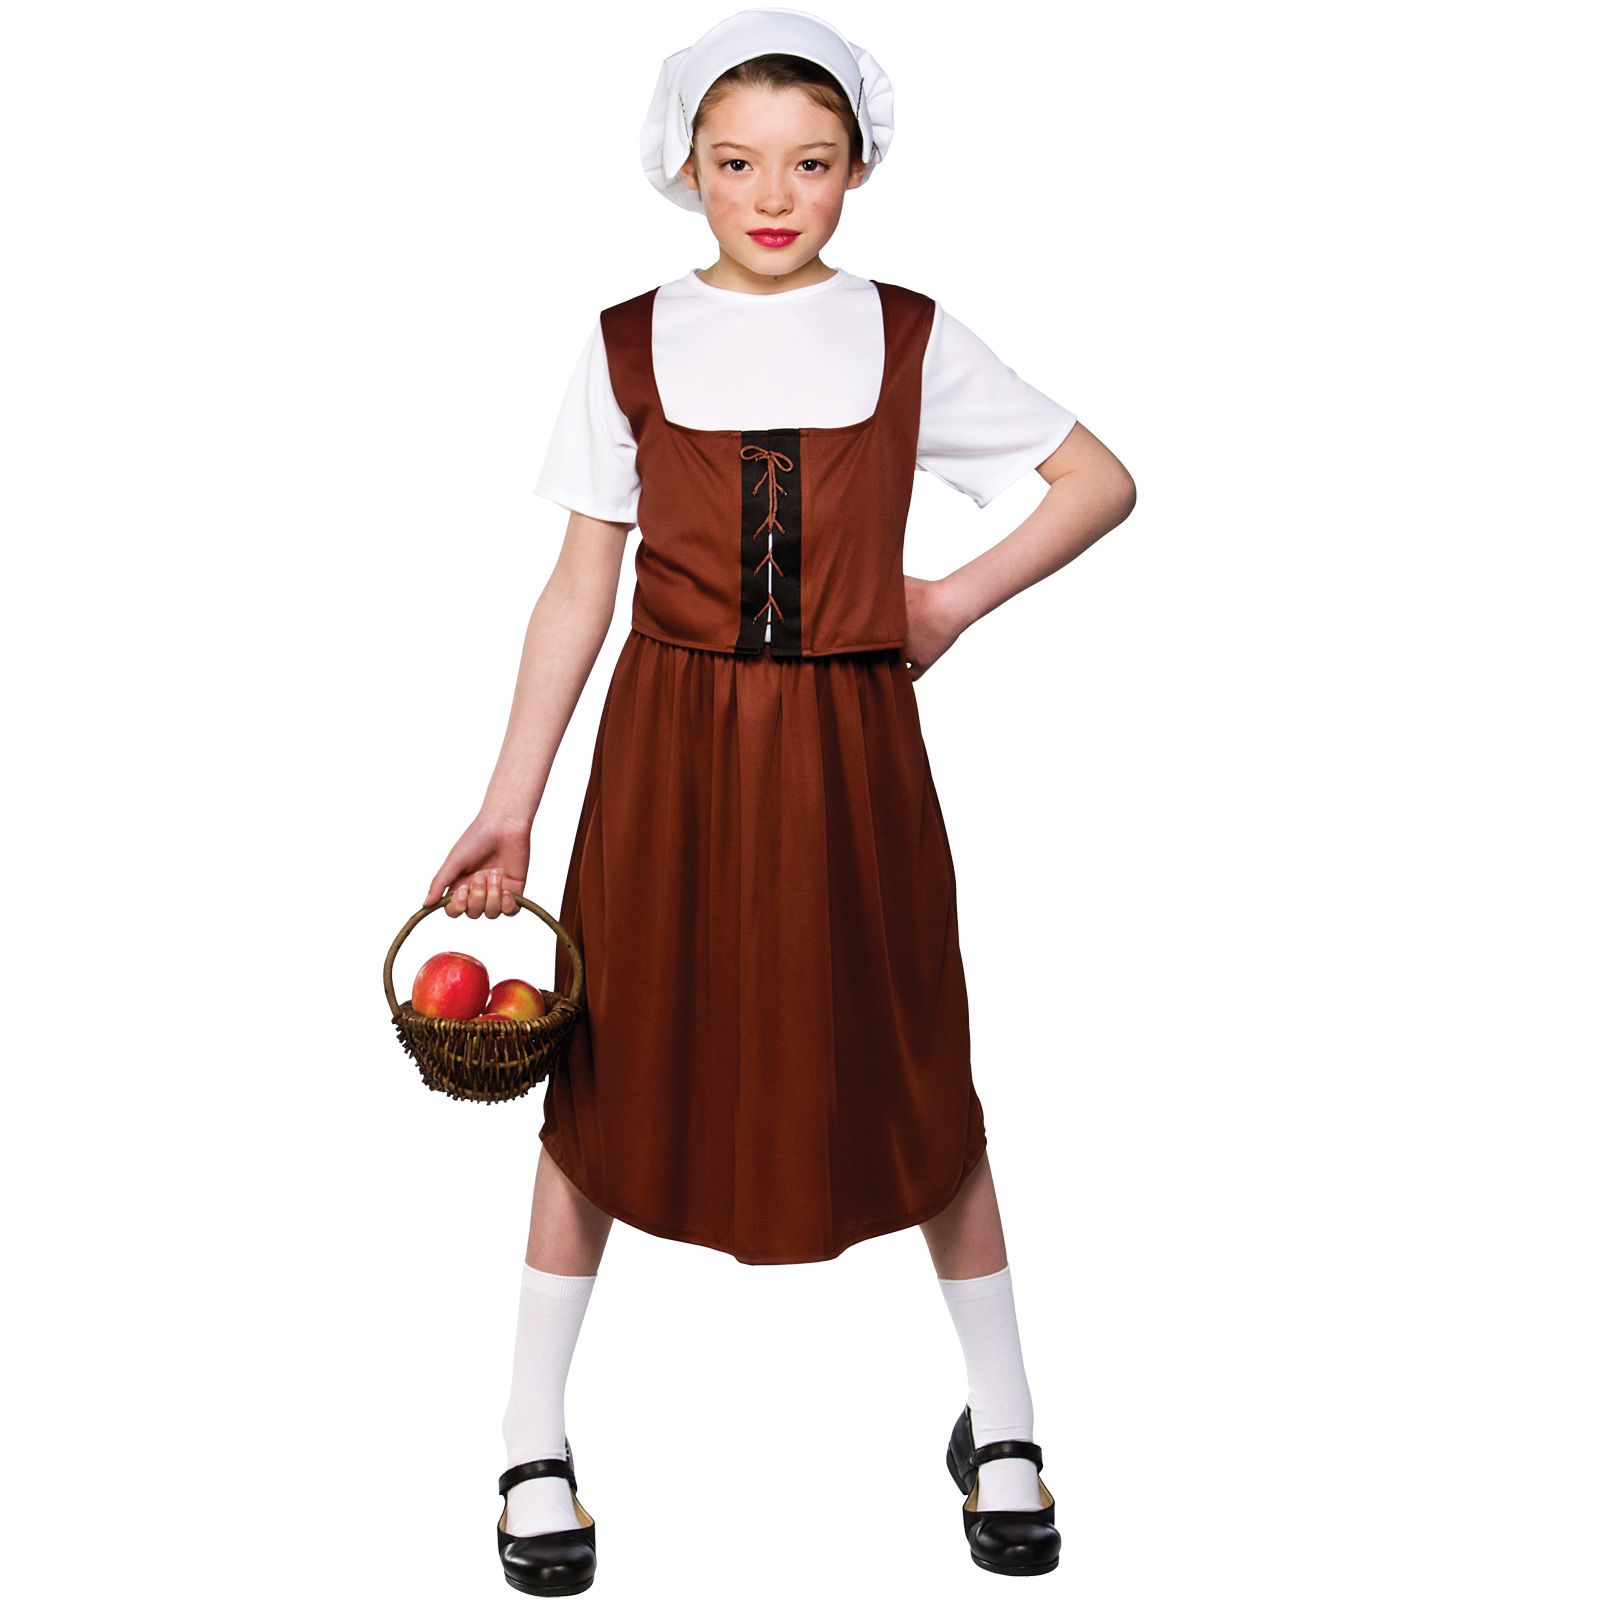 Girls Tudor Peasant Girl Costume Fancy Dress Up Party Halloween Outfit Kid Child | eBay